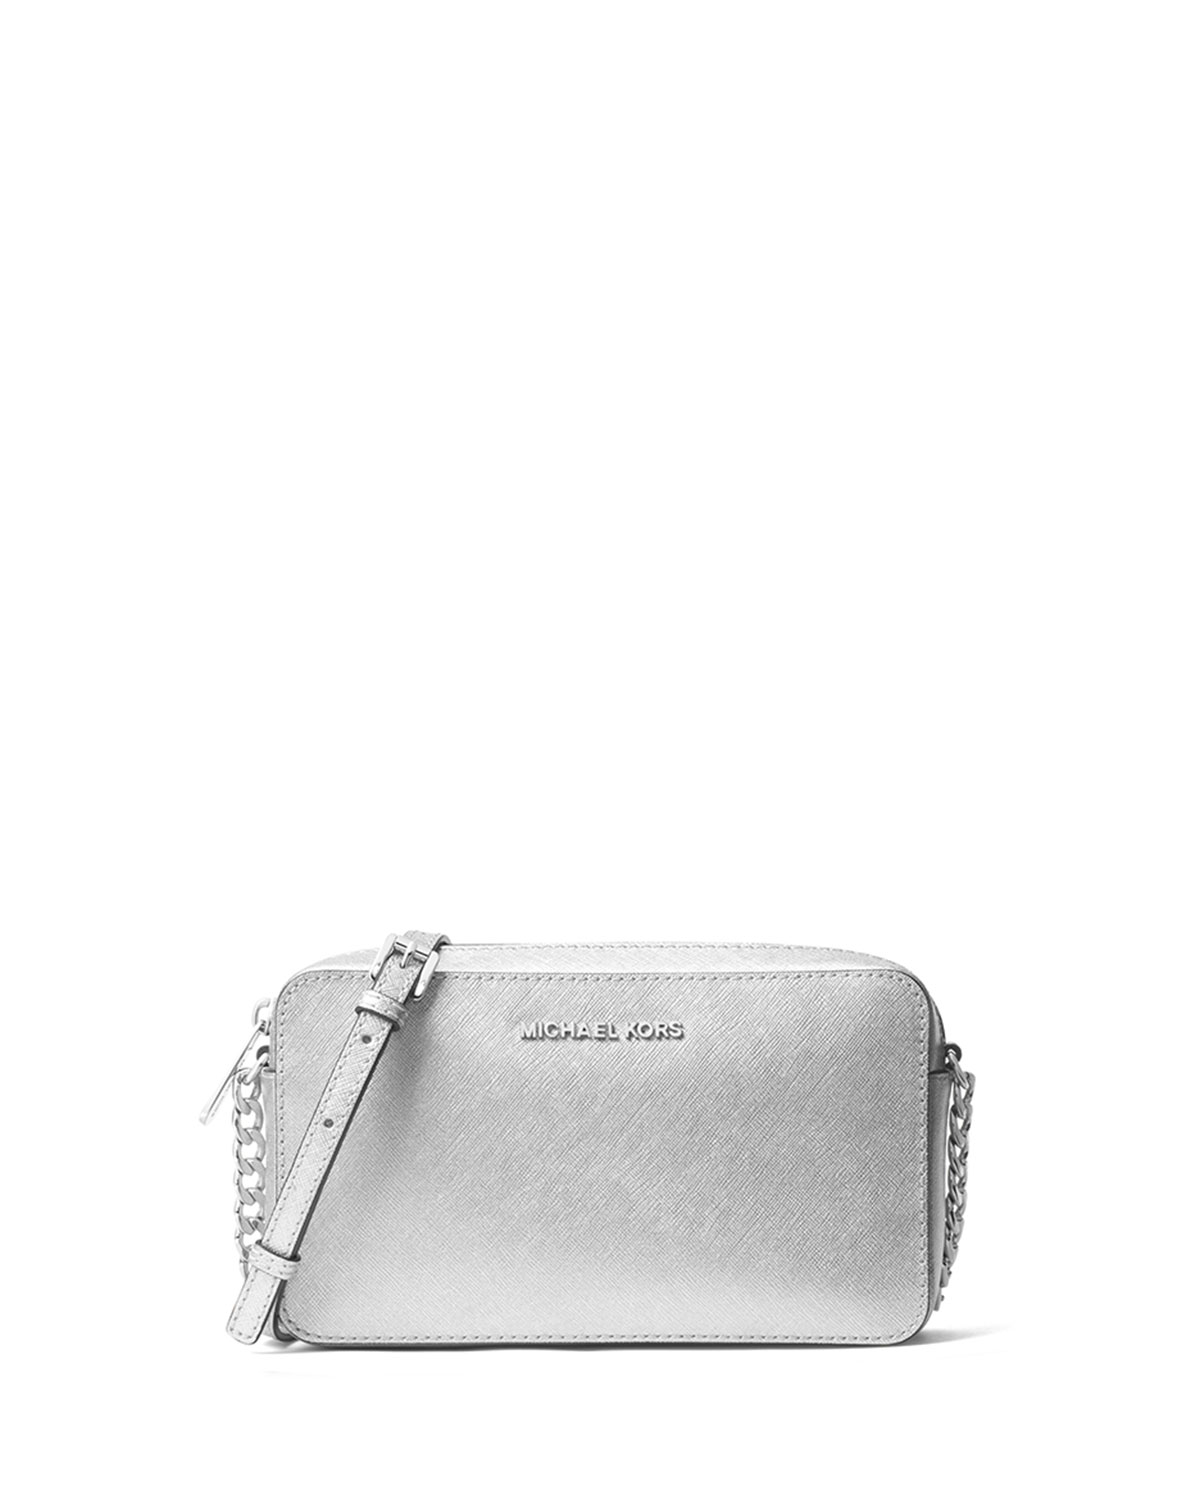 12b38877590f MICHAEL Michael Kors Jet Set Travel Medium Crossbody Bag, Silver ...